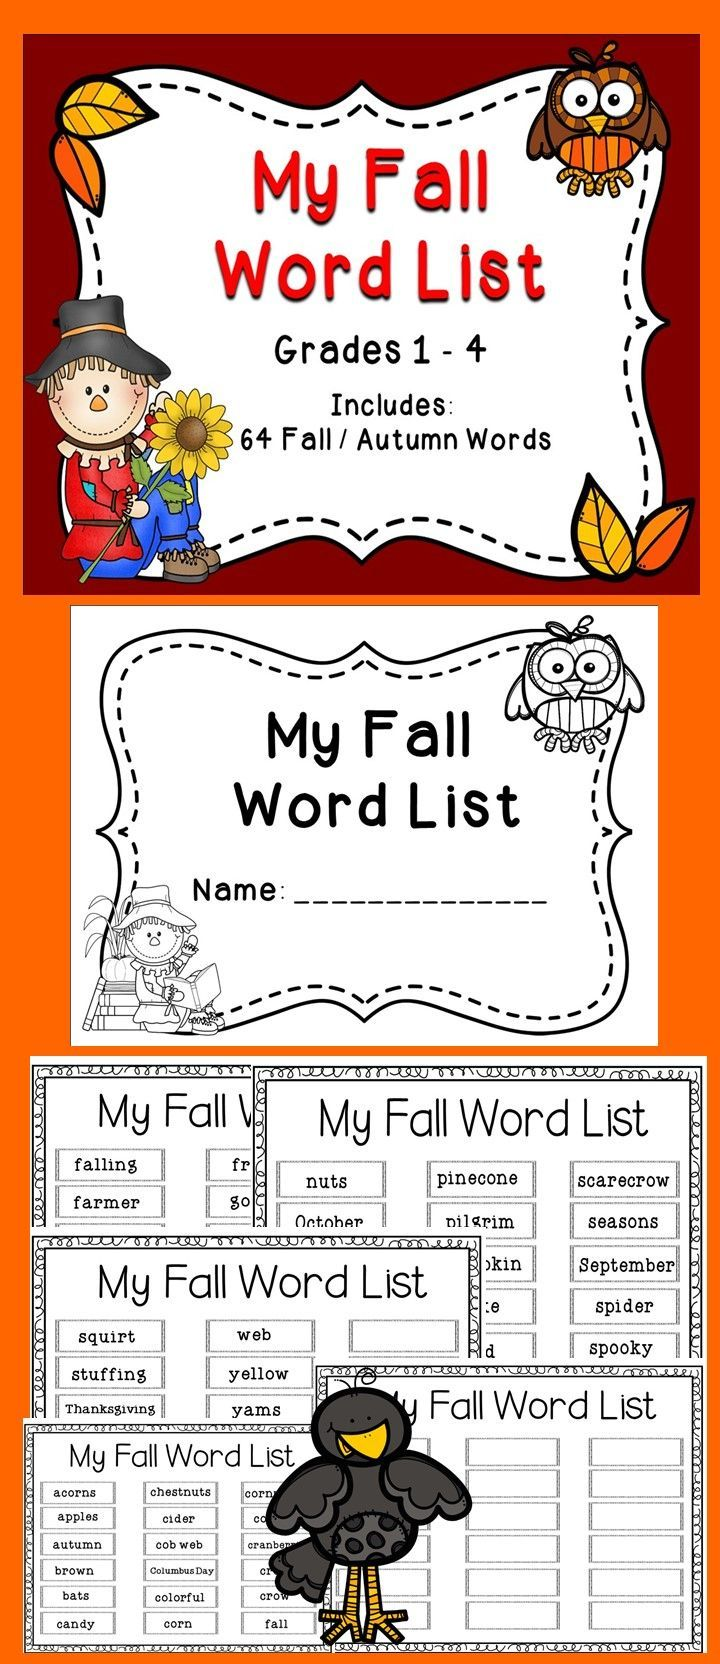 Autumn Leaf Unit Study - Pinterest